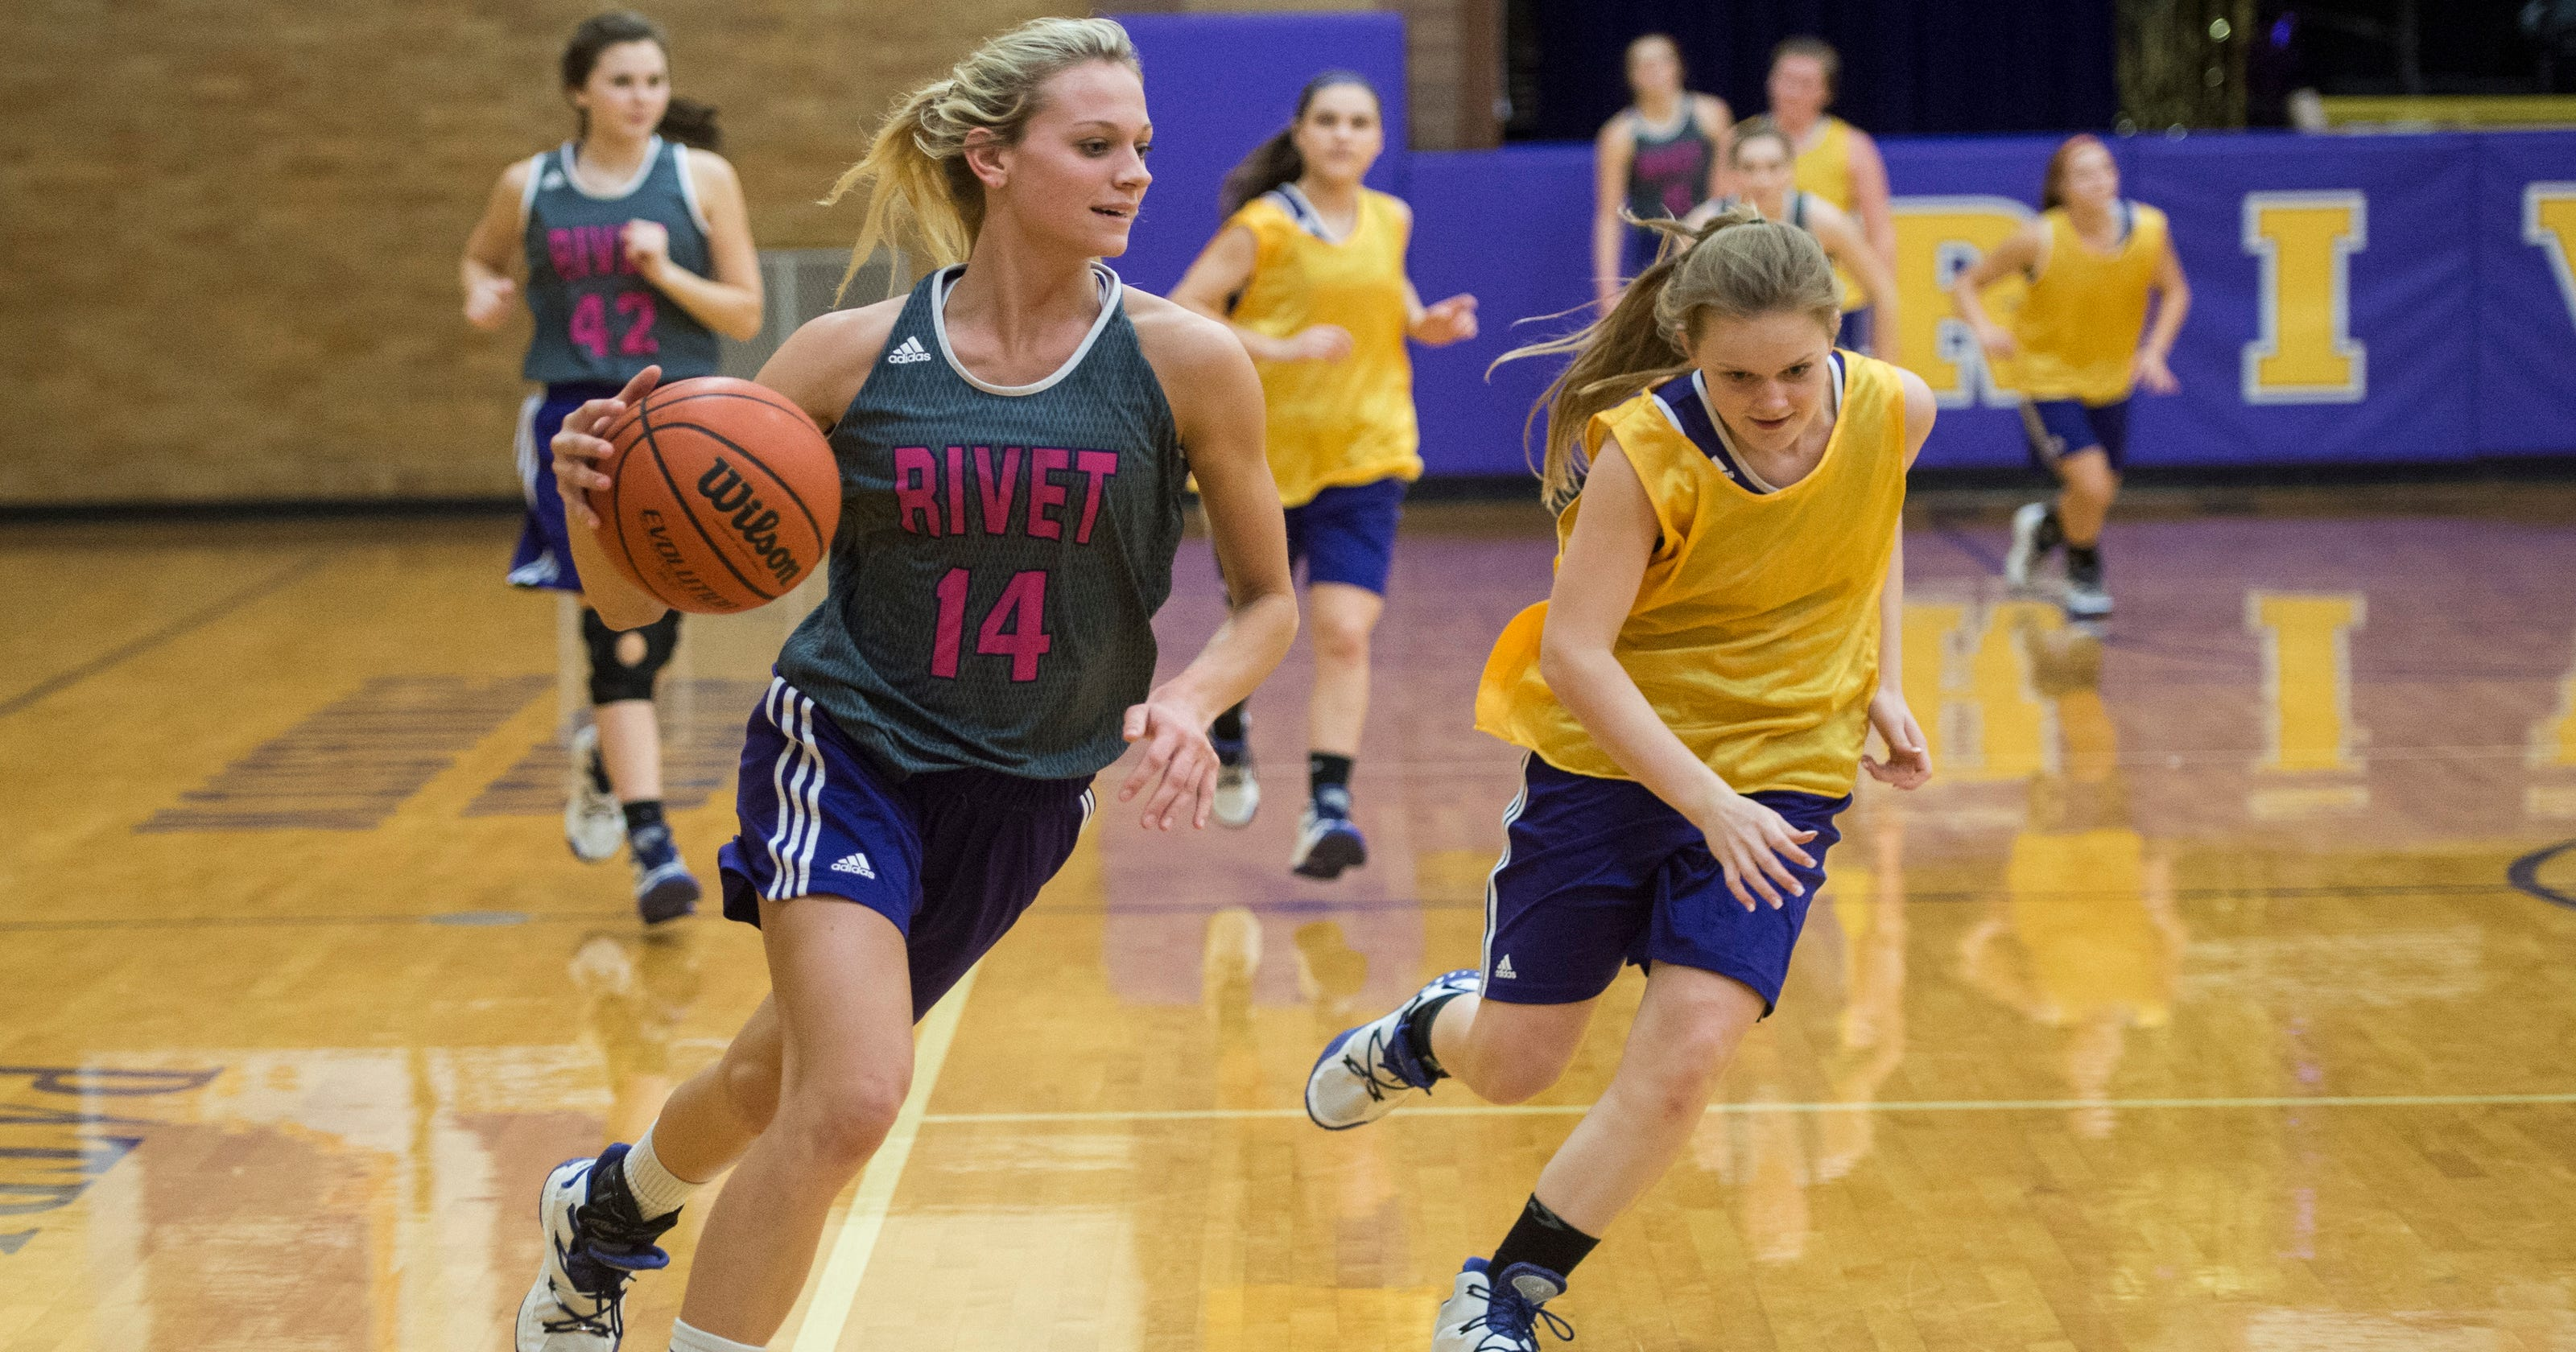 Articles - Dubois County Herald |Vincennes Basketball